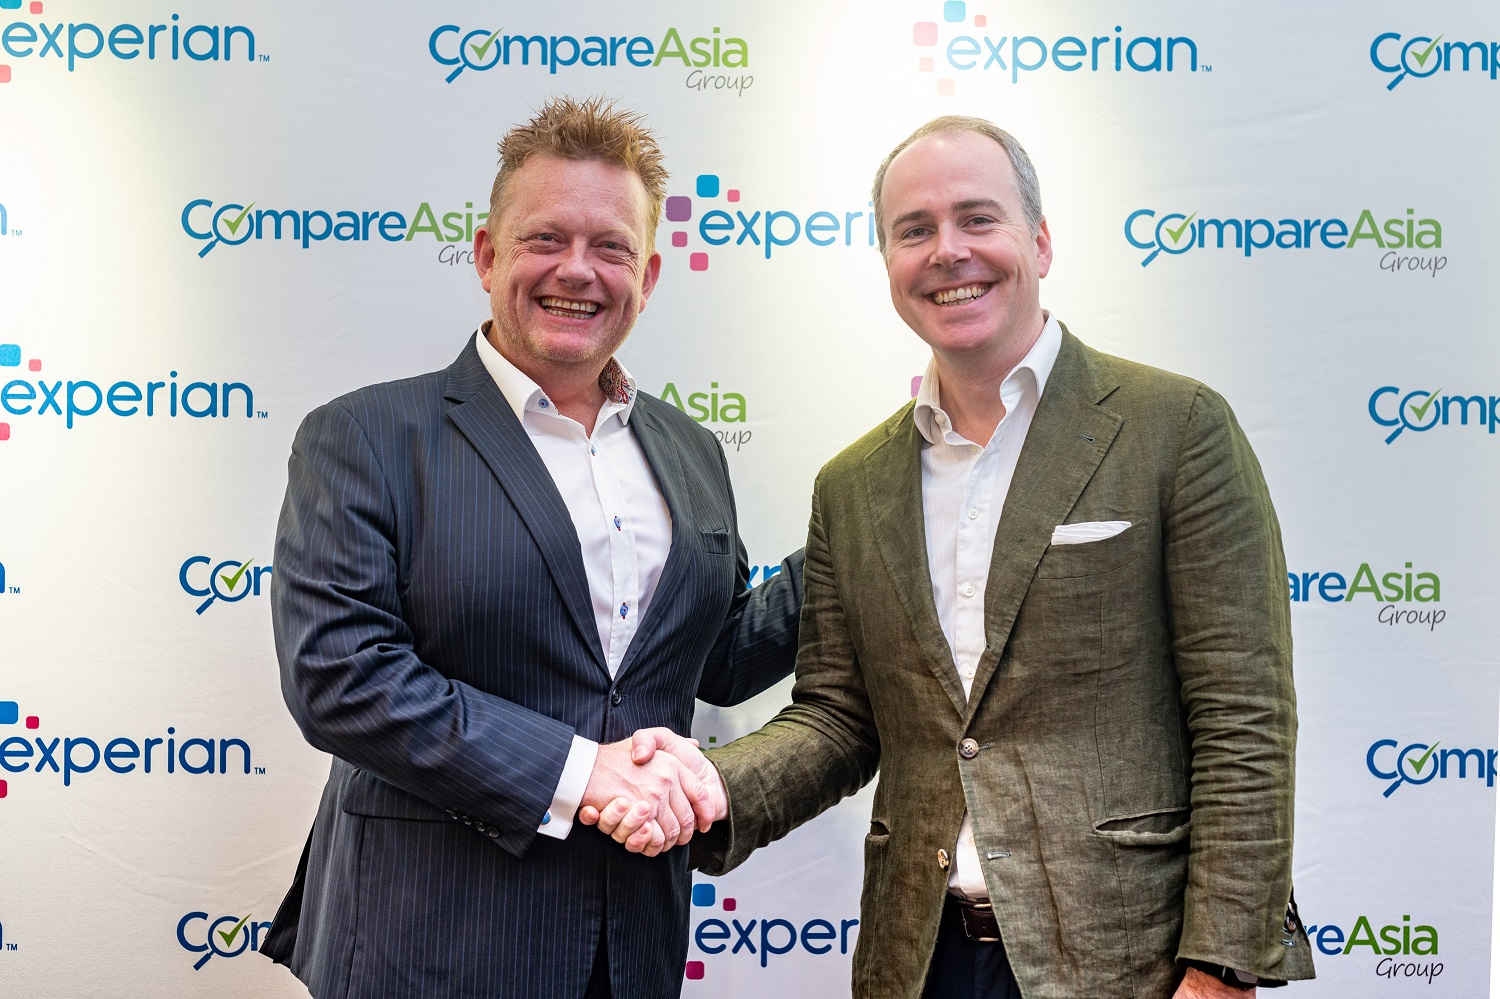 Experian and CompareAsiaGroup Announce Technology Partnership, with Experian Leading US$20M First Close of the Platform's Series B1 Investment